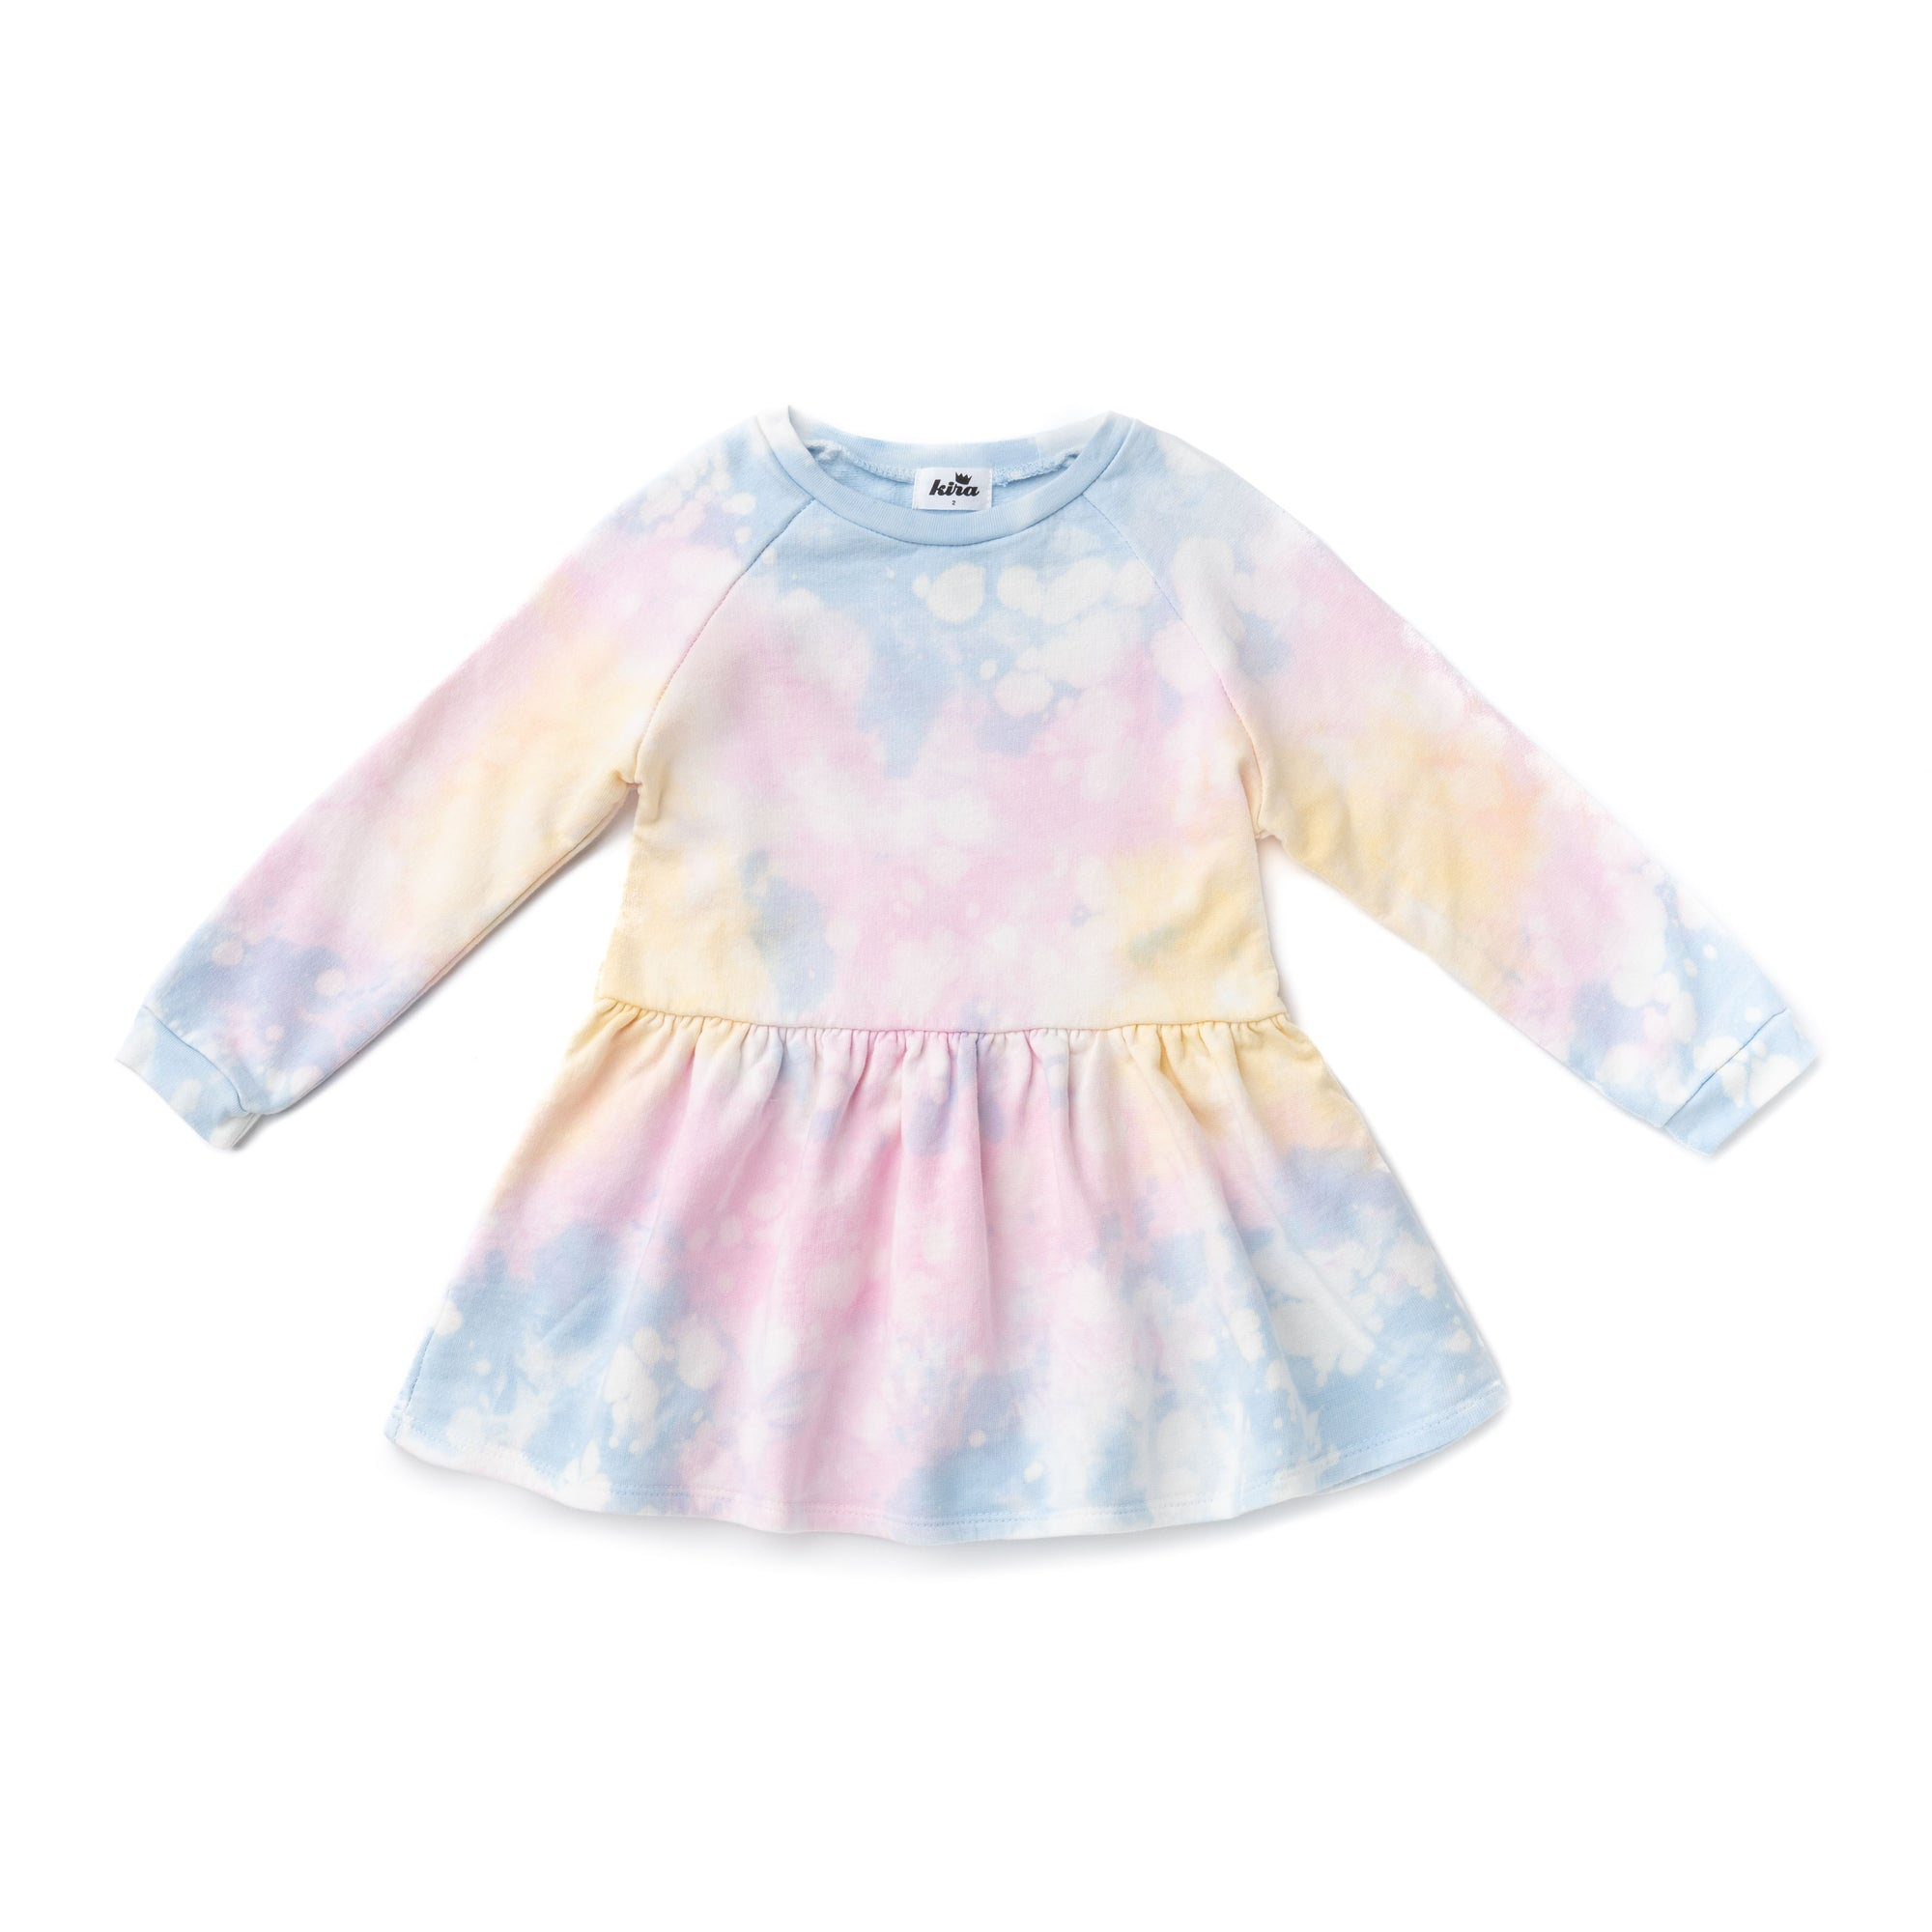 Shave Ice Tie Dye Sweatshirt Dress